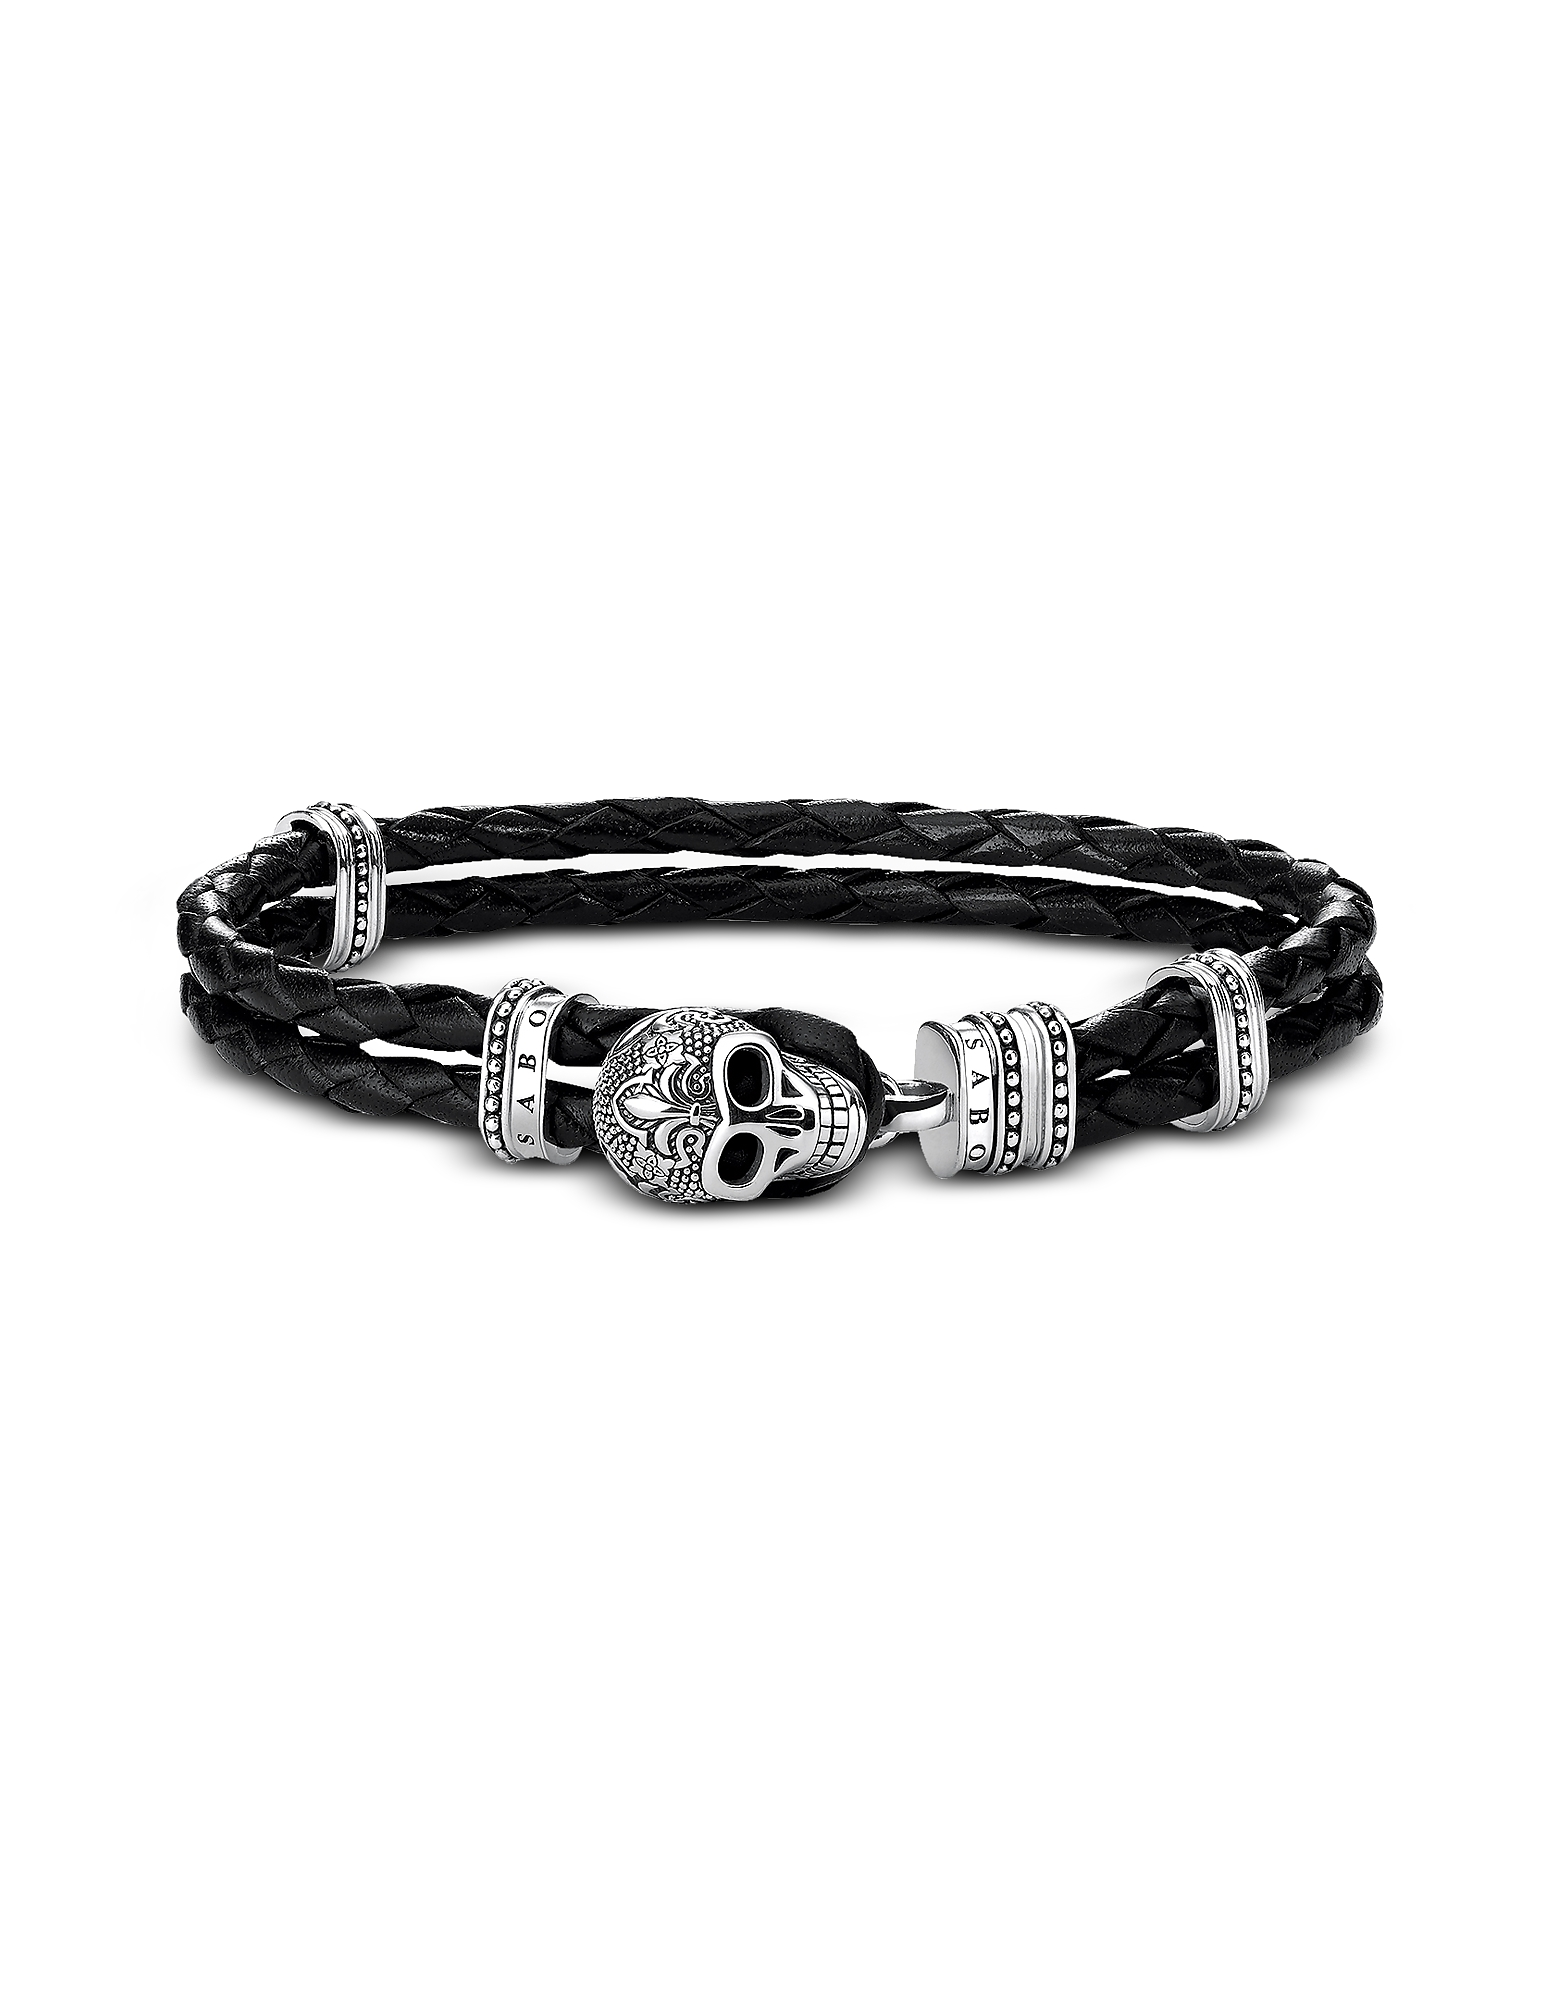 Blackened 925 Sterling Silver and Leather Skull with Lily Double Bracelet